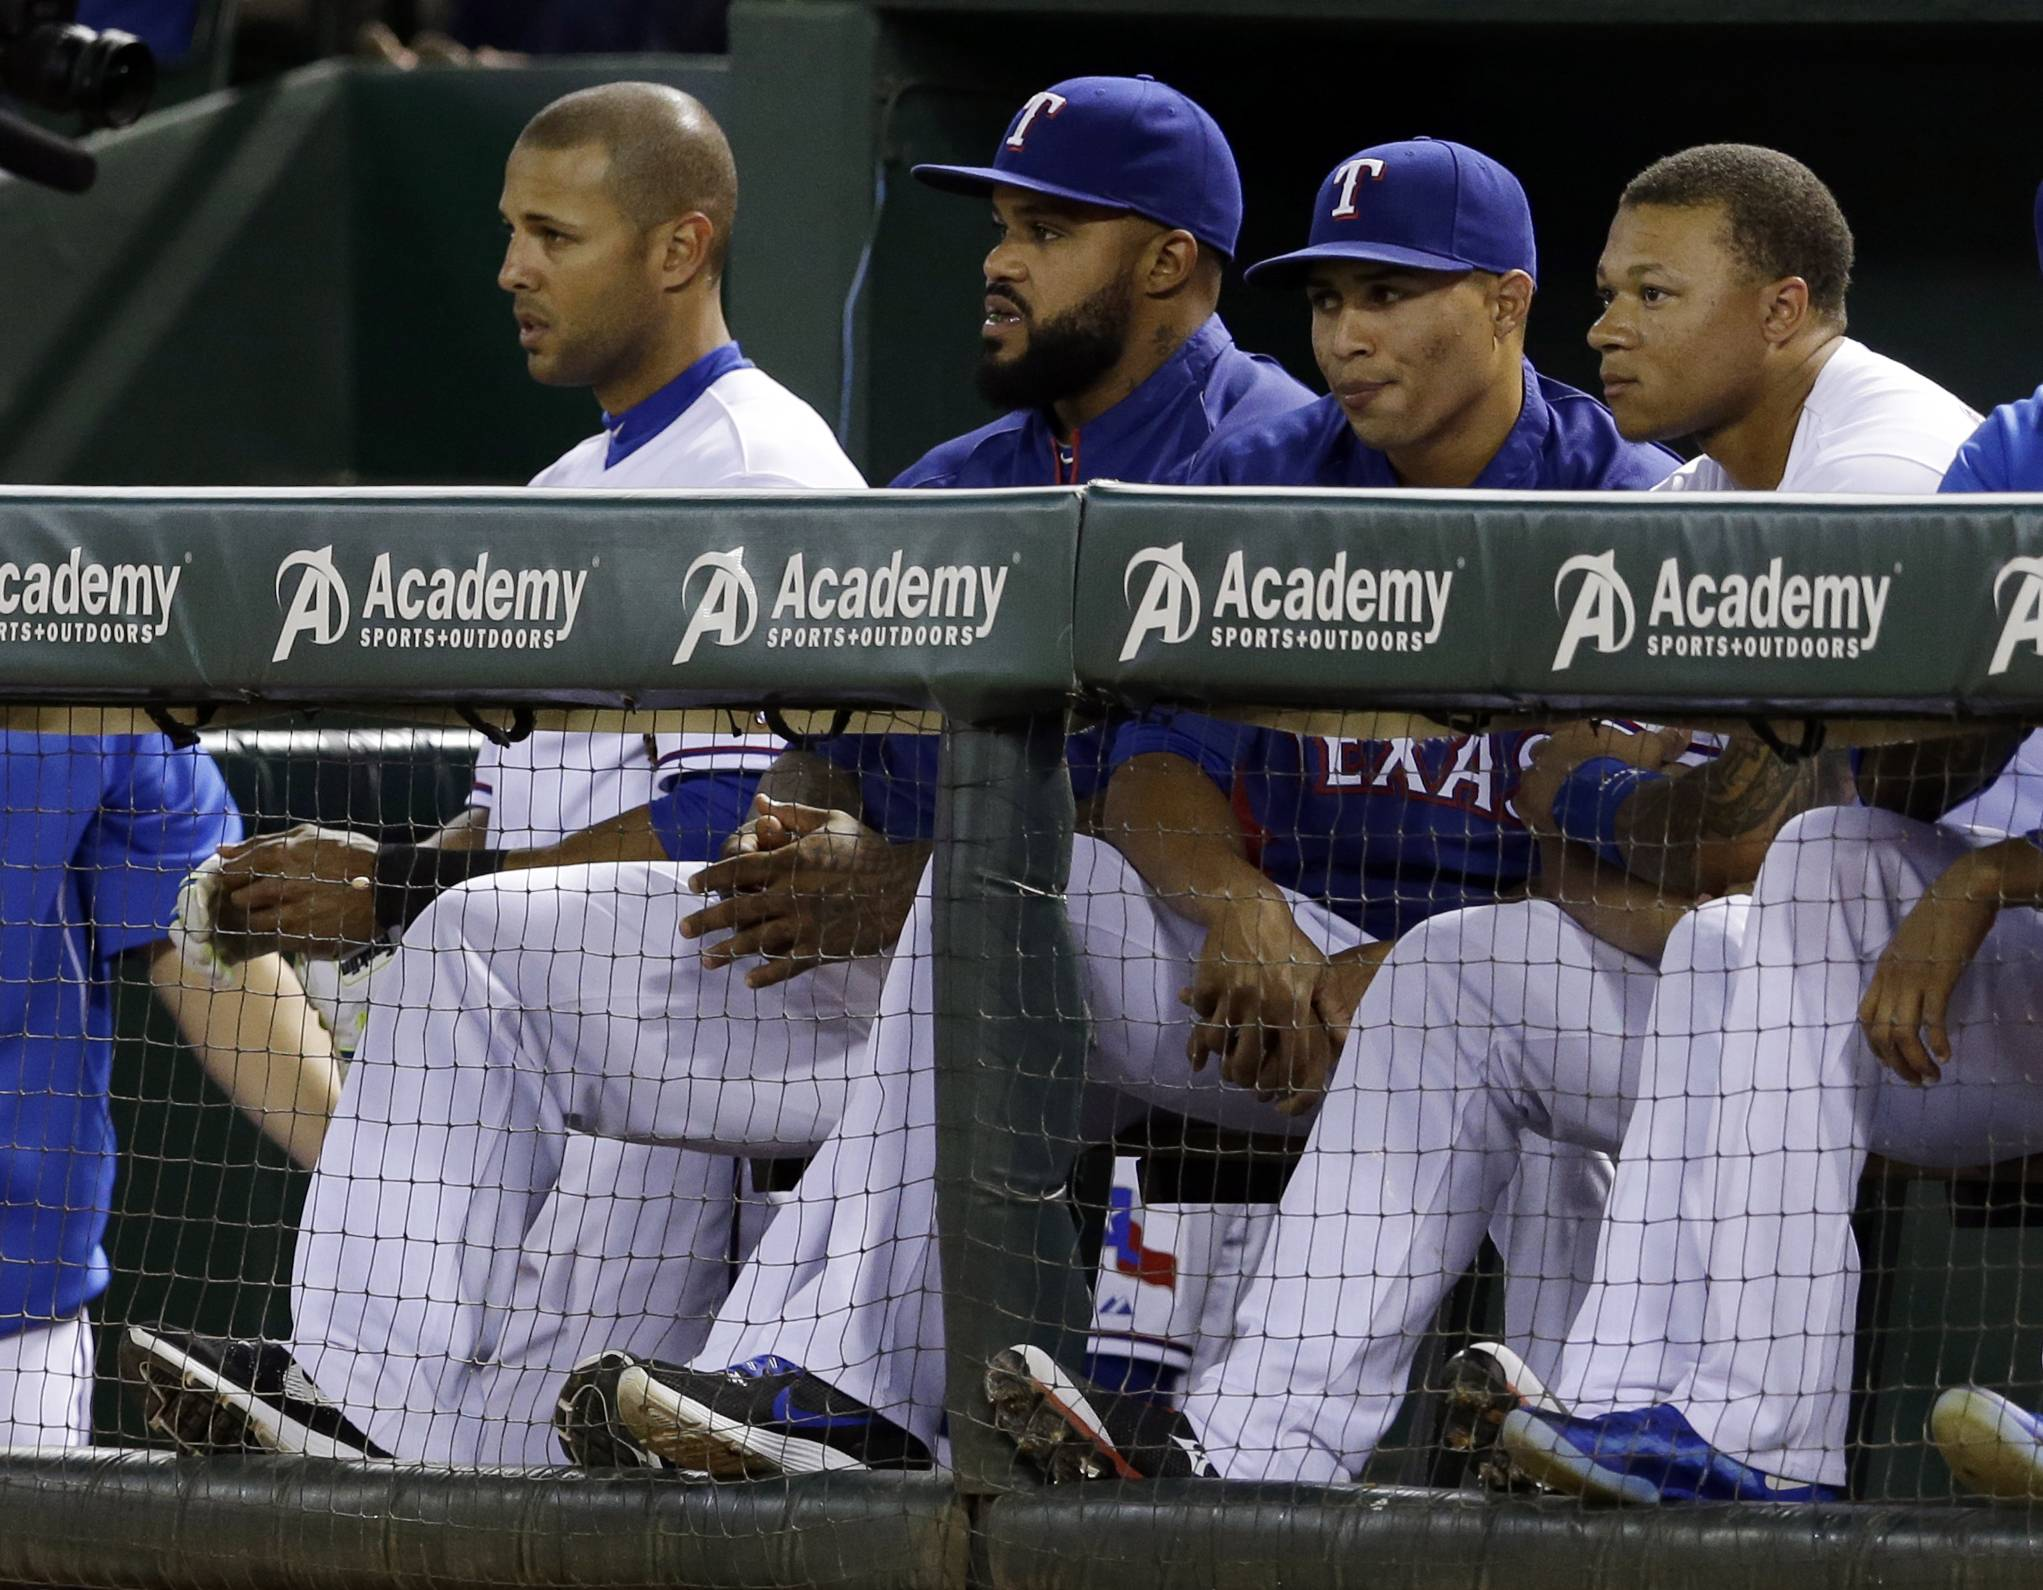 Texas Rangers' Alex Rios, from left, Prince Fielder, Leonys Martin, and Michael Choice, right, watch play in the sixth inning of a baseball game against the Seattle Mariners, Tuesday, May 20, 2014, in Arlington, Texas. (AP Photo/Tony Gutierrez )